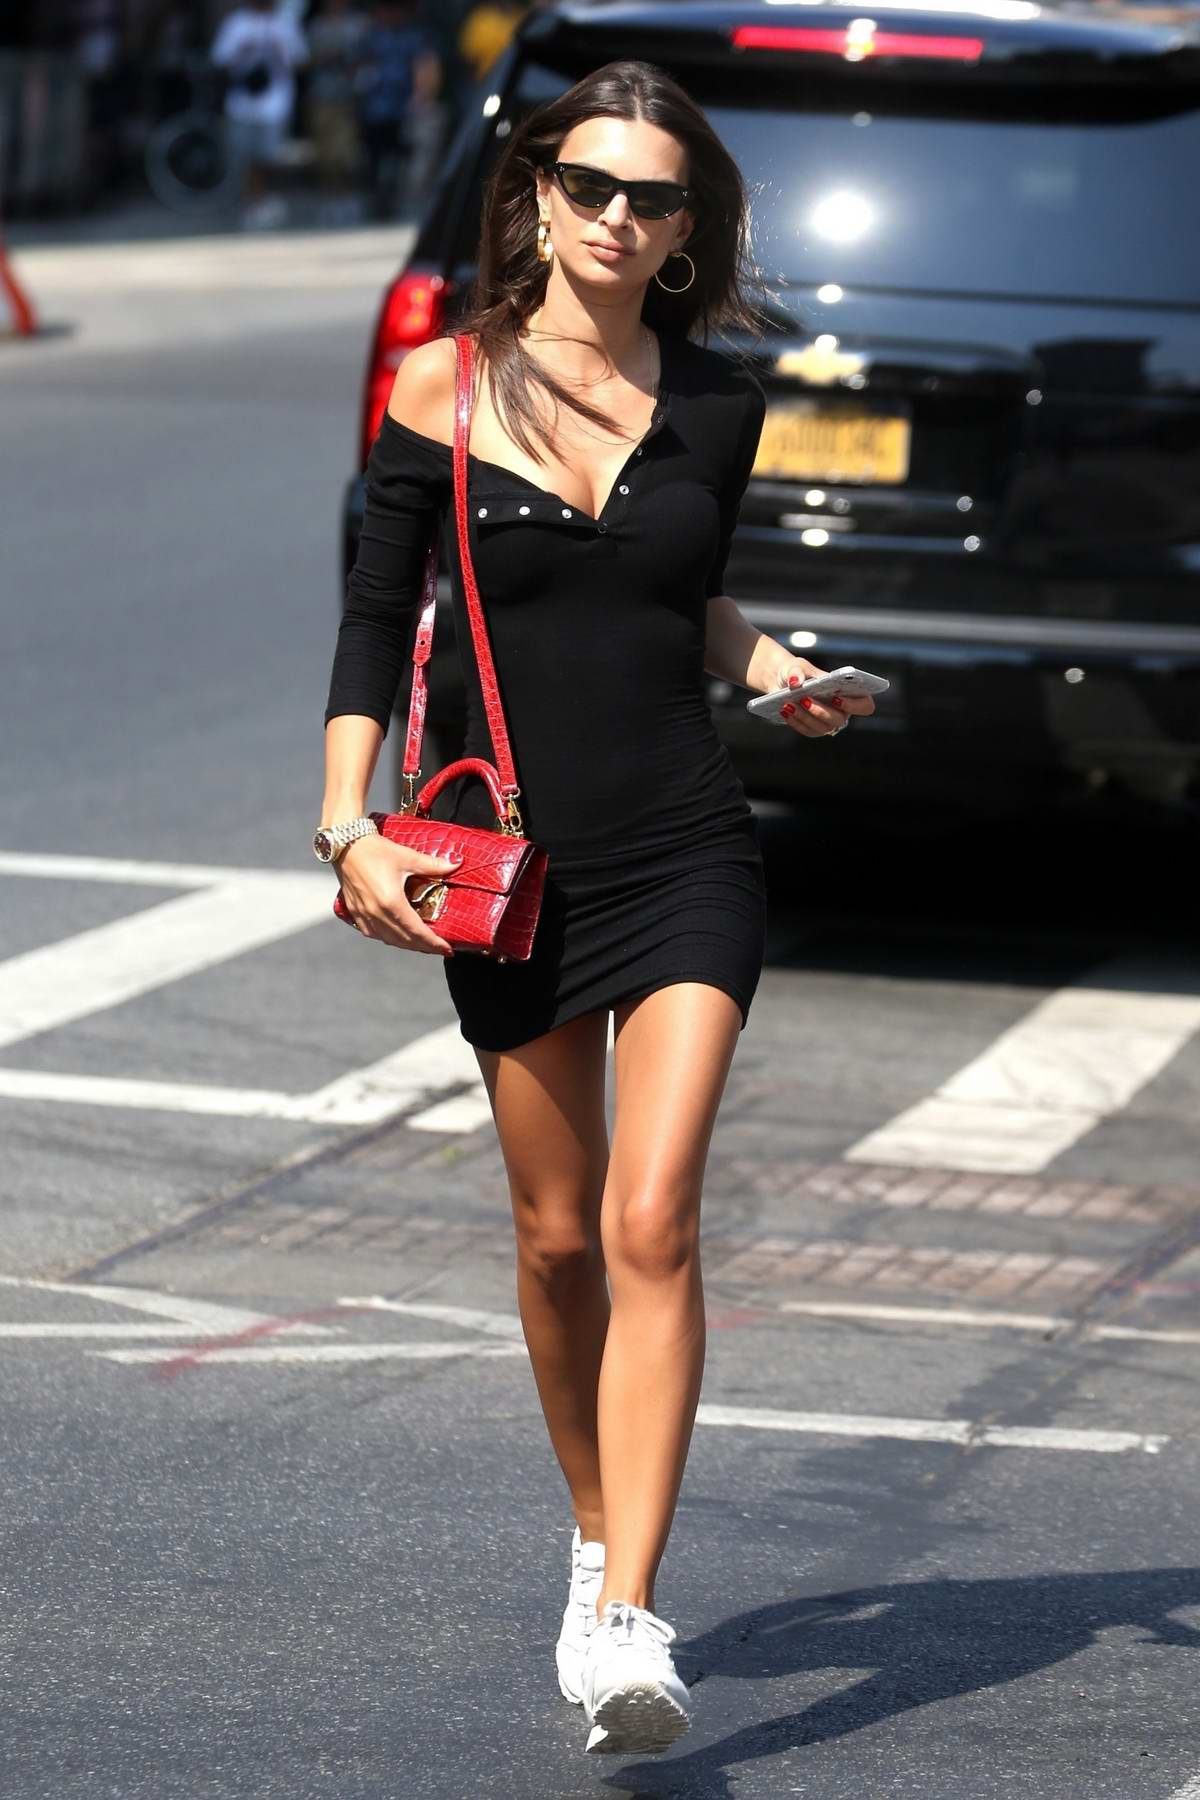 Emily Ratajkowski spotted while touching up her makeup after lunch in New York City